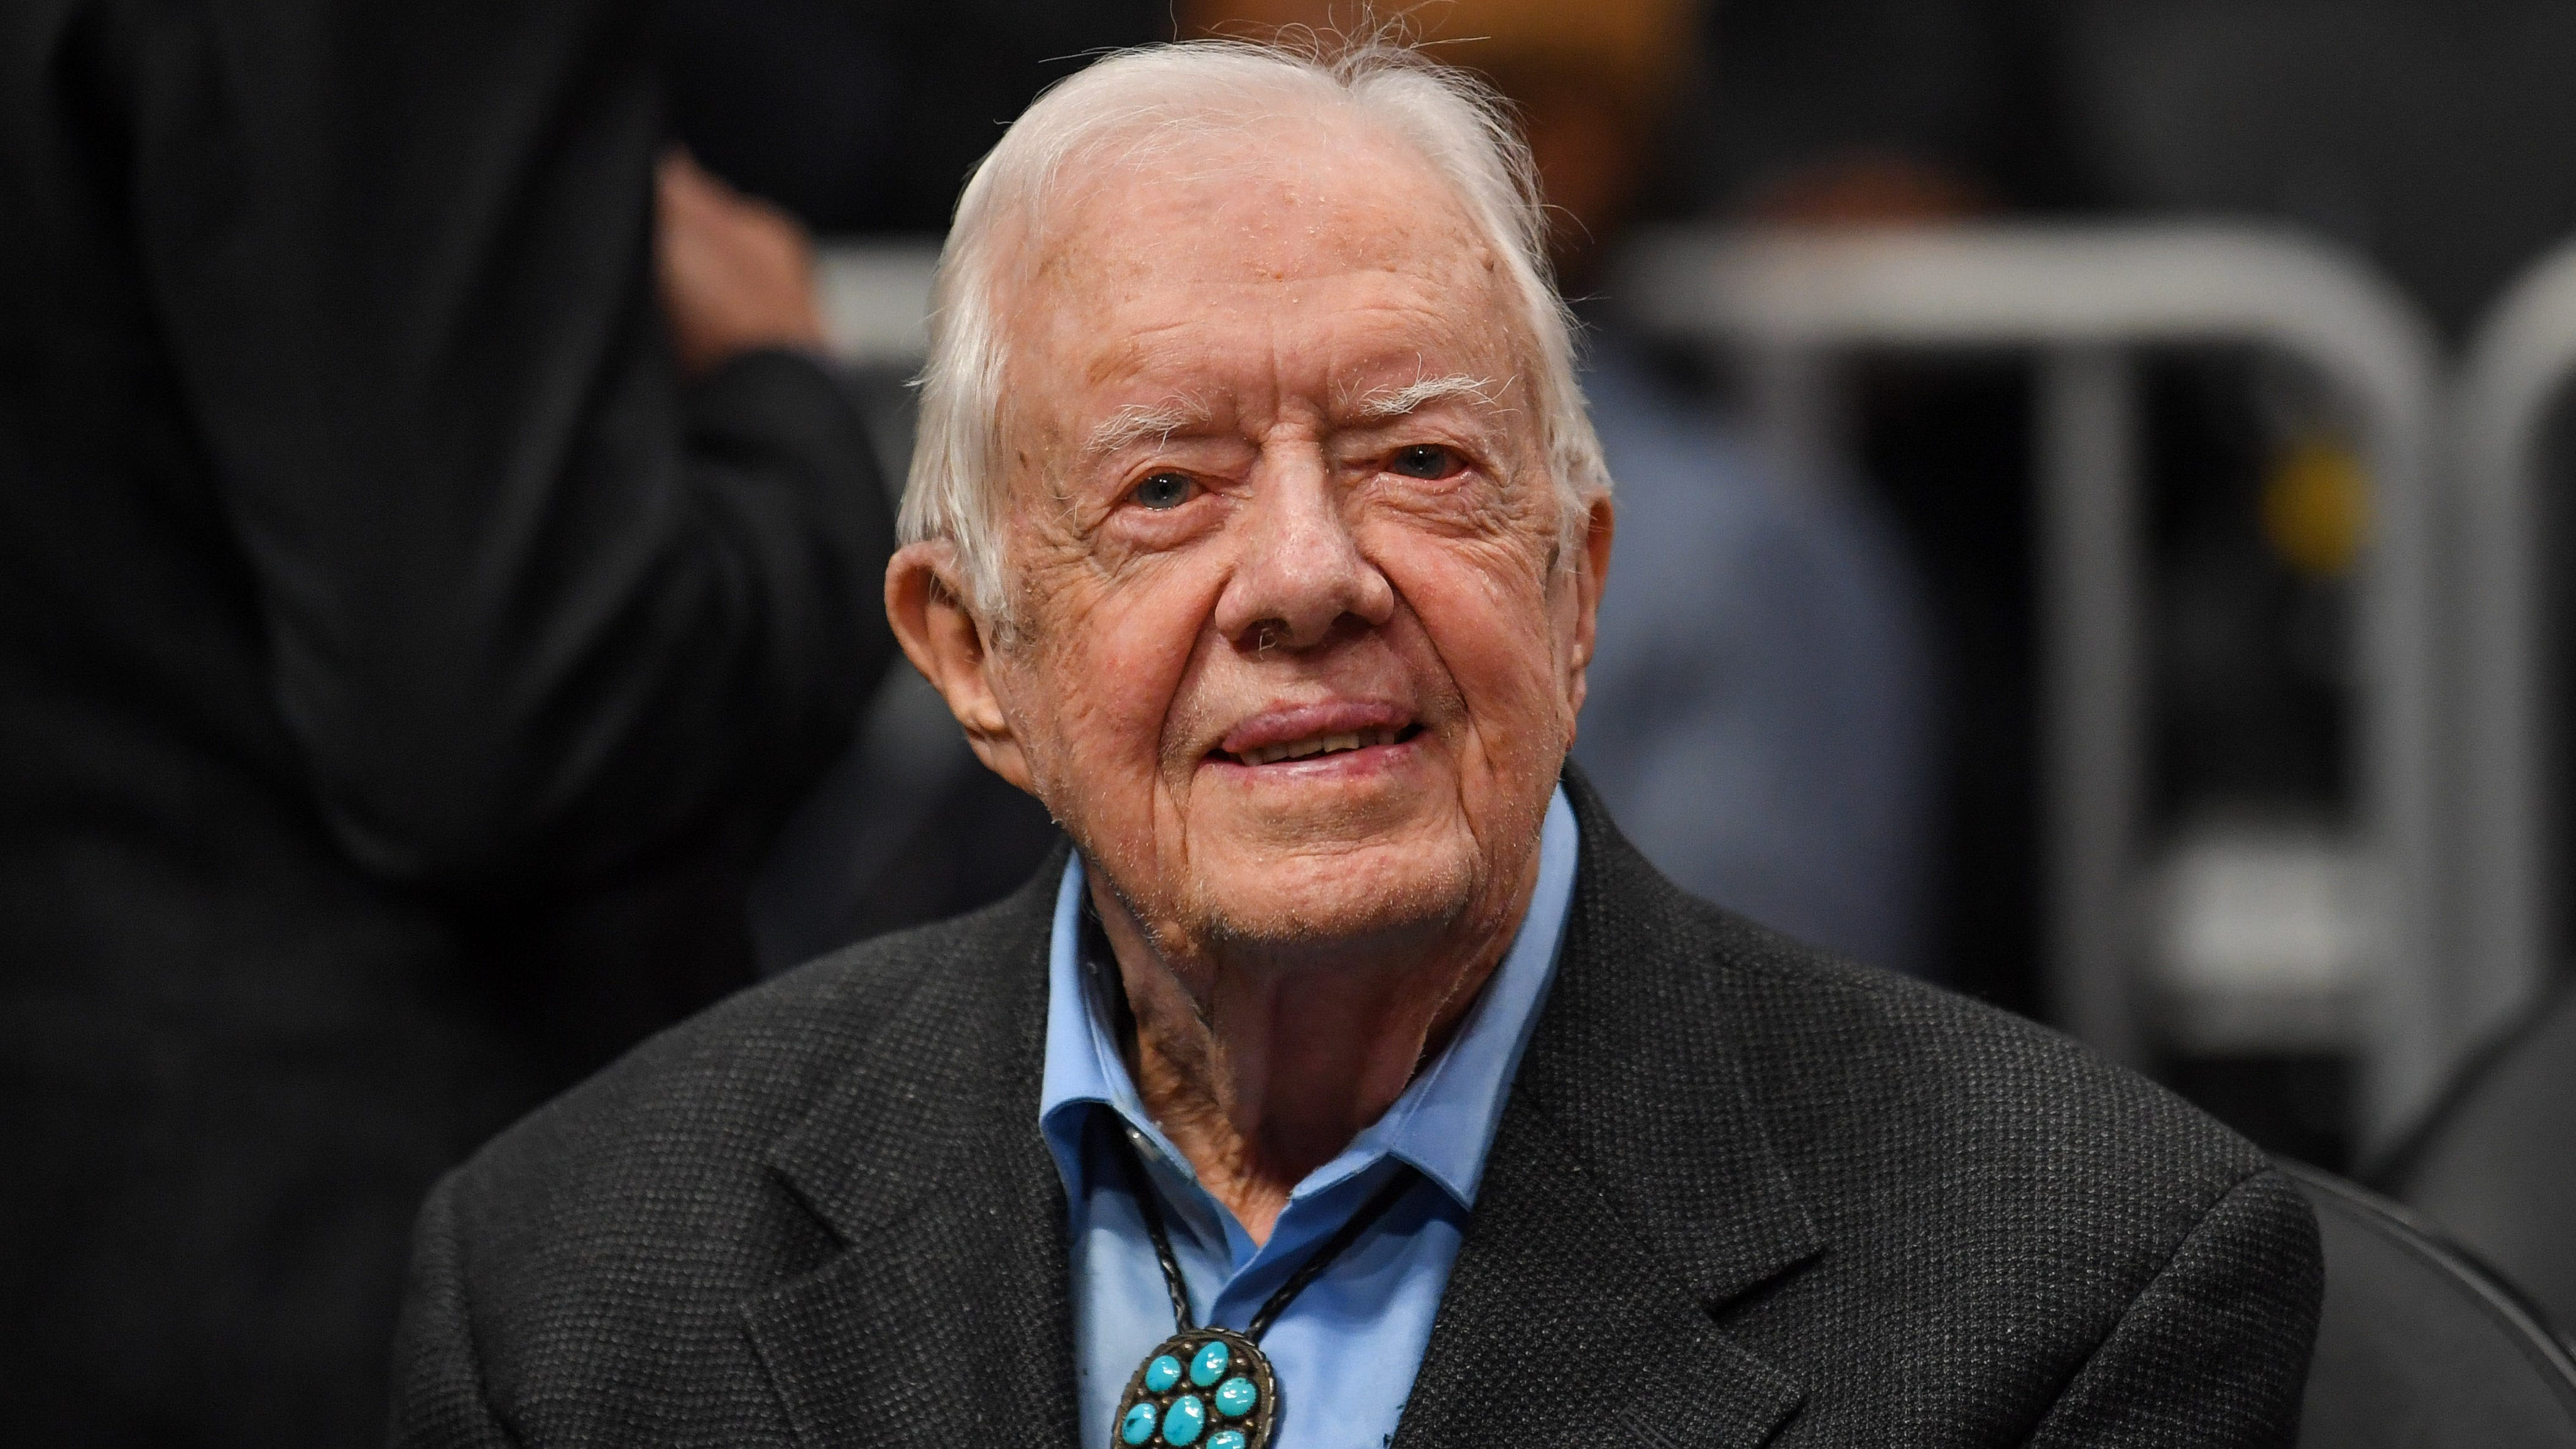 Jimmy Carter watches a basketball game between the Atlanta Hawks and the New York Knicks at State Farm Arena in Atlanta on Feb. 14, 2019.